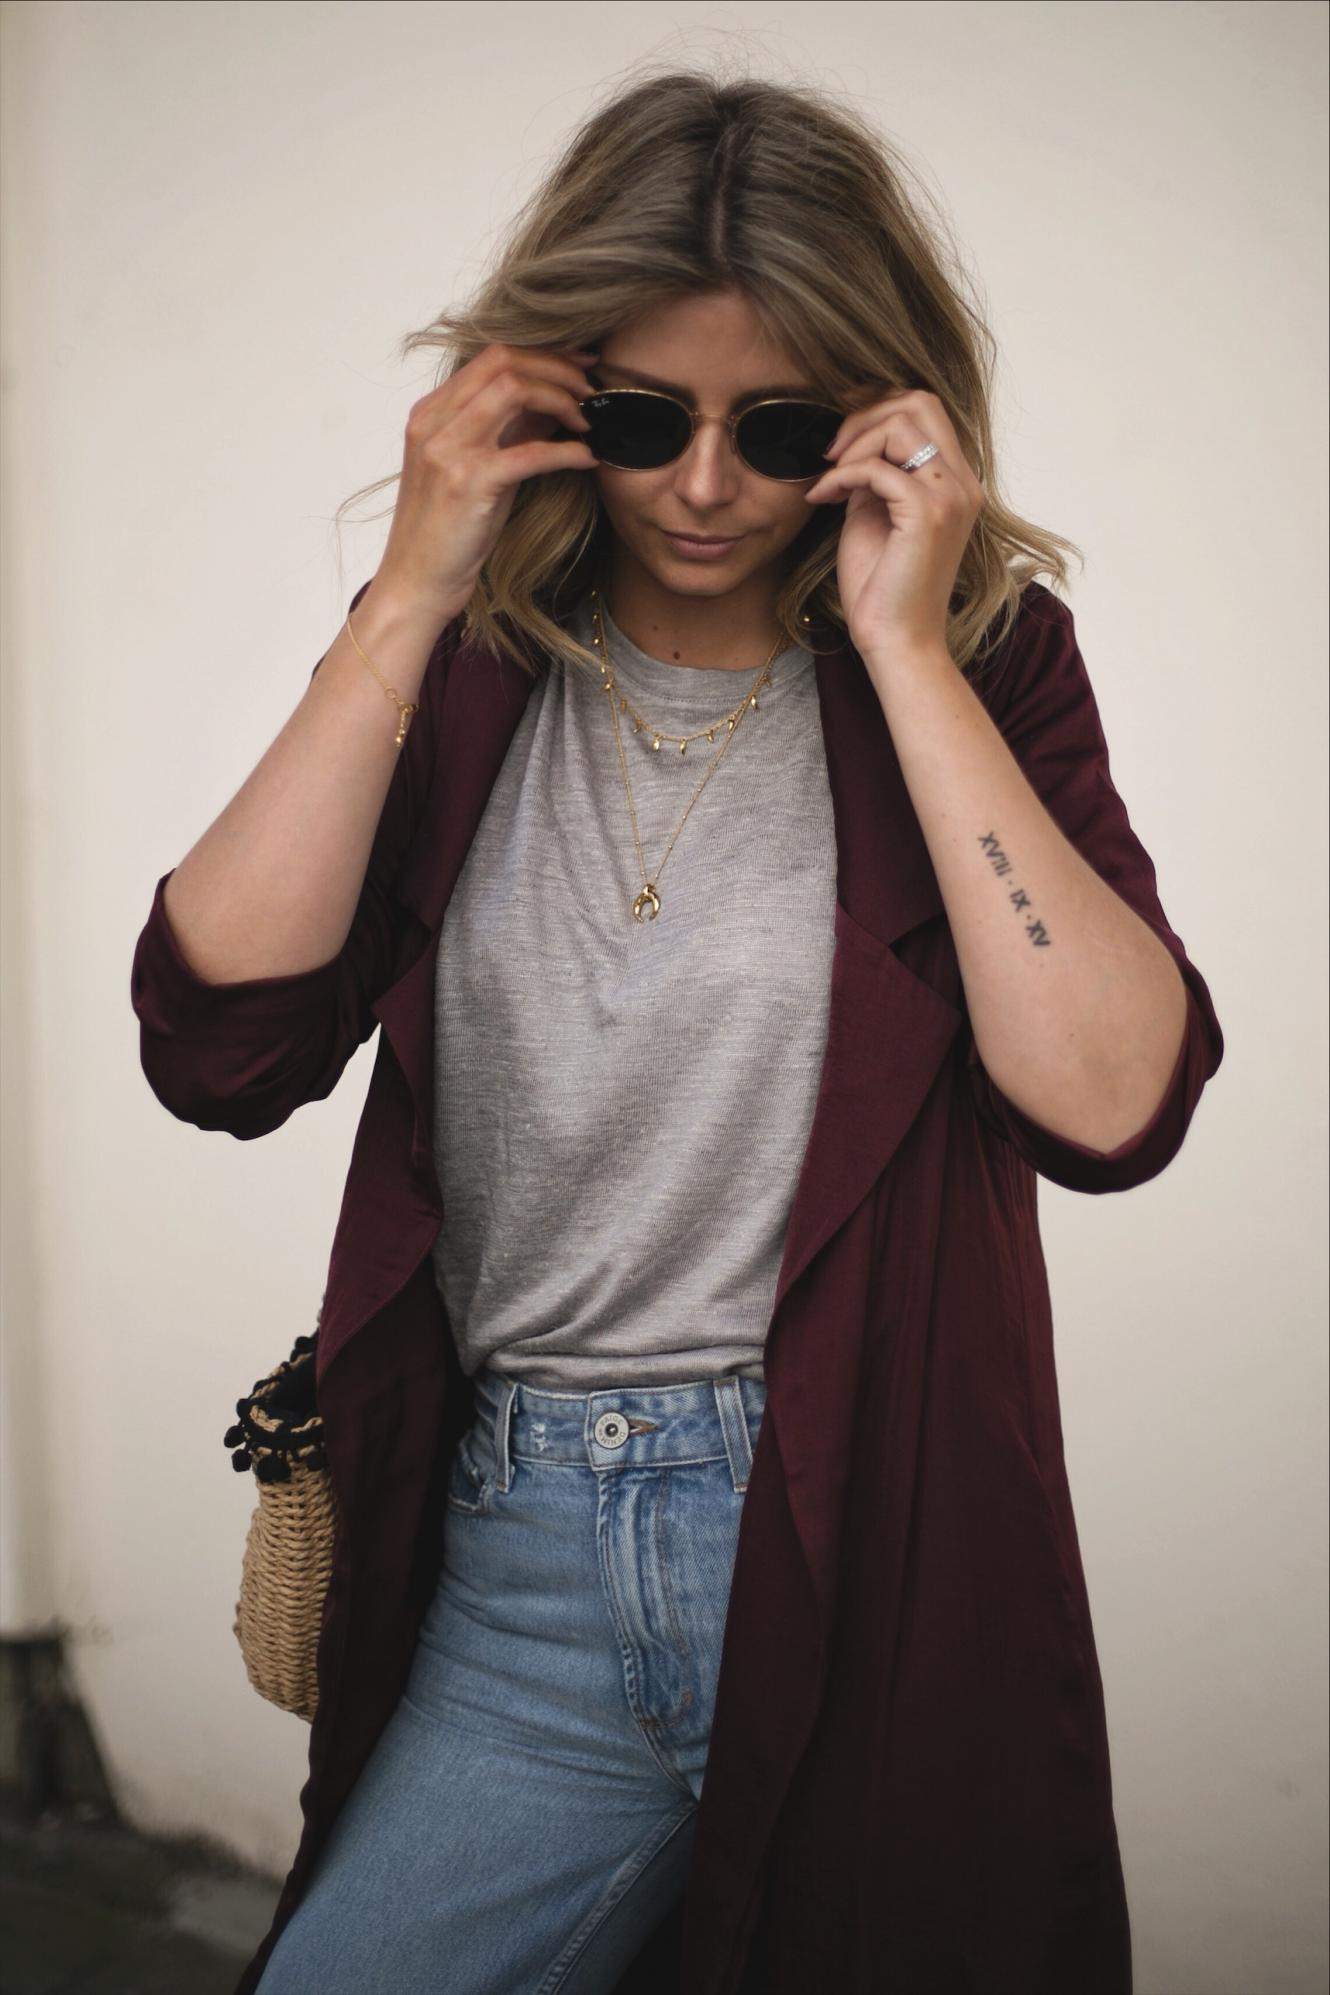 Emma Hill wears wine silky duster jacket, grey basic linen t-shirt, gold jewellery, straw basket bag, light wash Paige jeans, Ray Ban round metal gold sunglasses, tiny Roman numerals arm tattoo